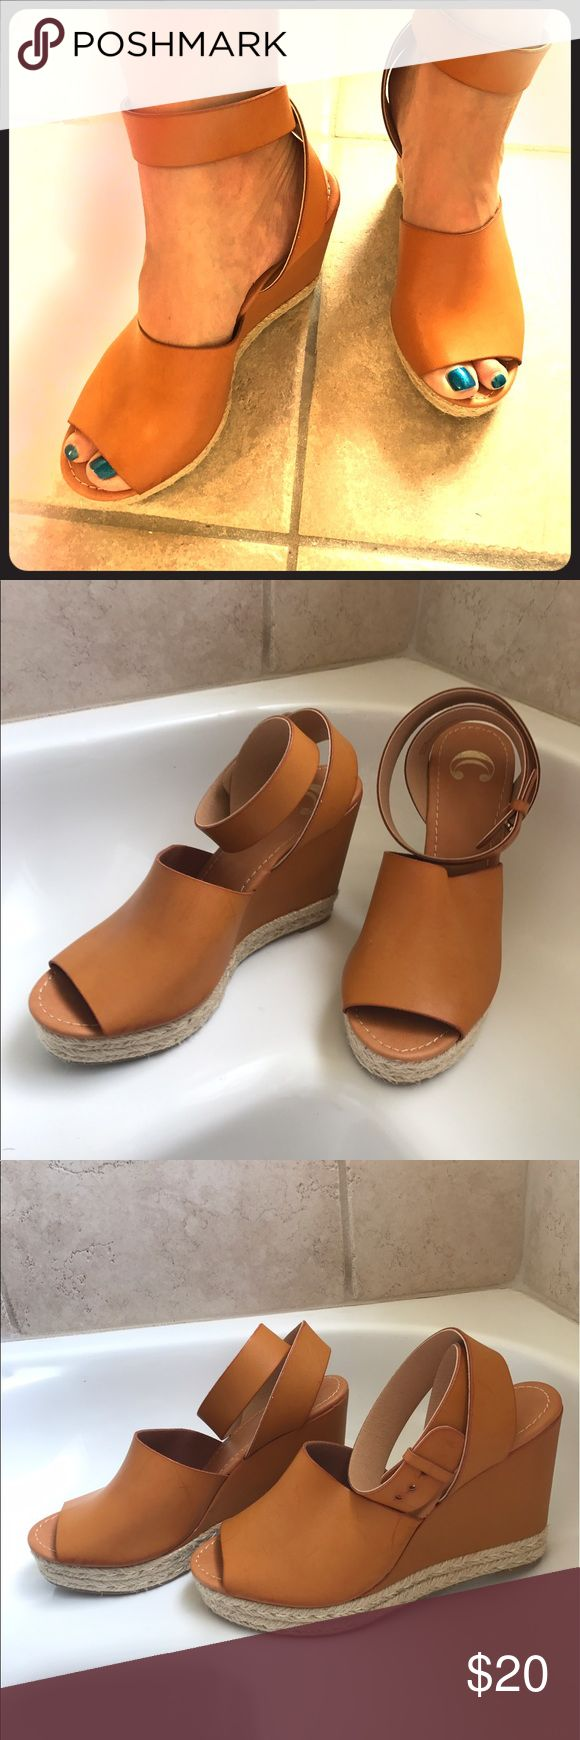 Camel wedges Camel peep toe sandals/wedges. Approx 4in heels. Wrap around ankle strap with gold button type closure. Charming Charlie Shoes Wedges